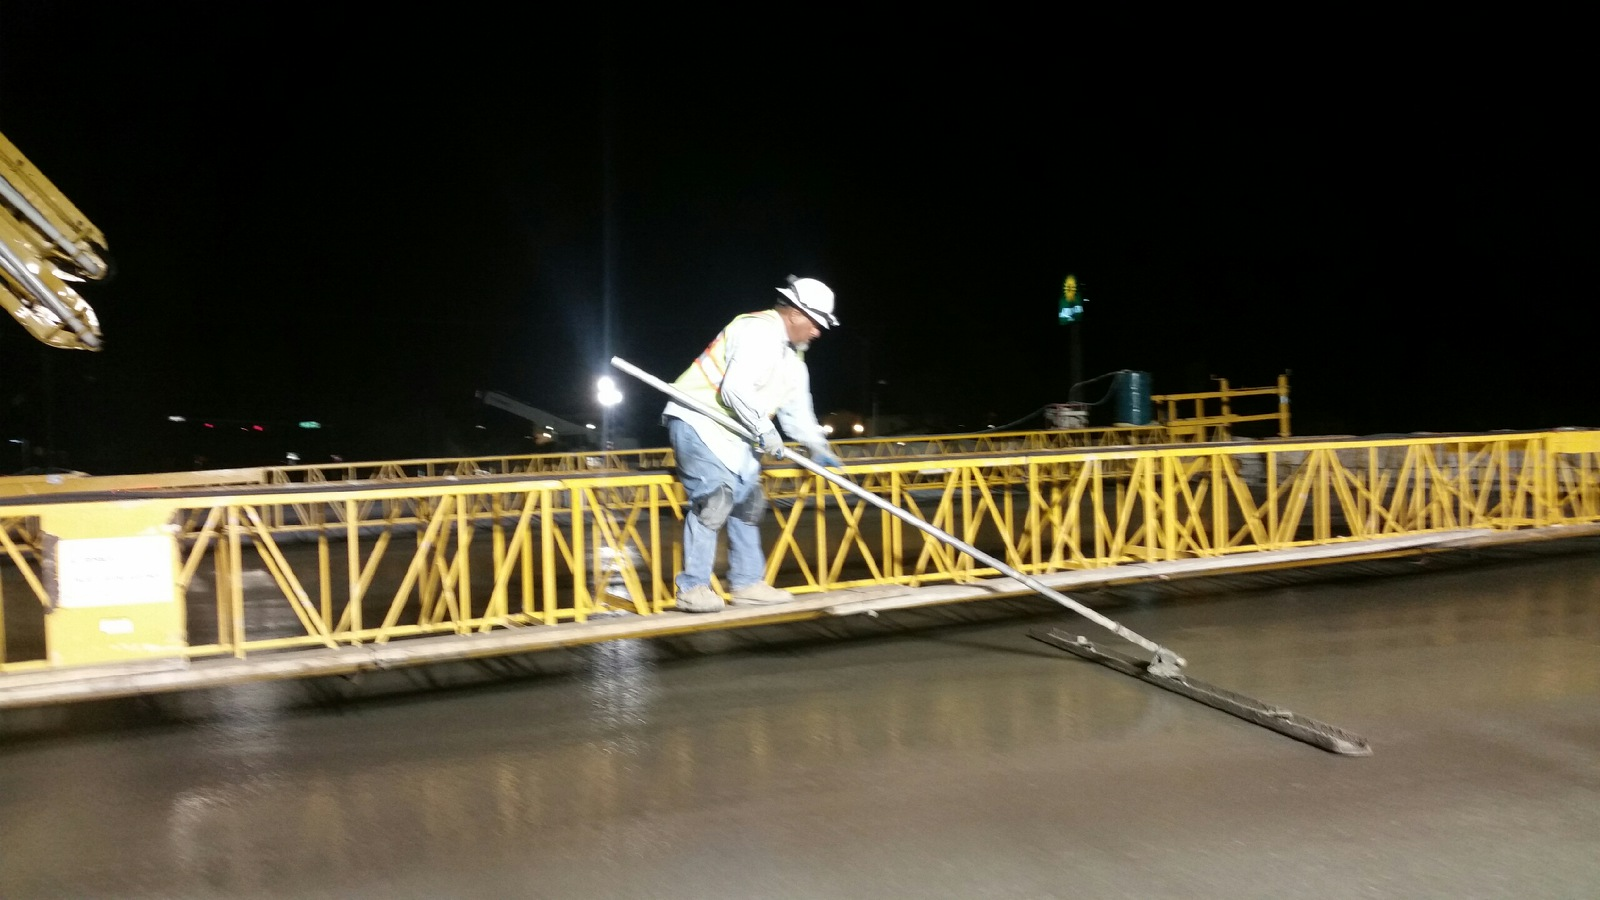 William Cannon finalizing bridge deck pour for southbound turn-around